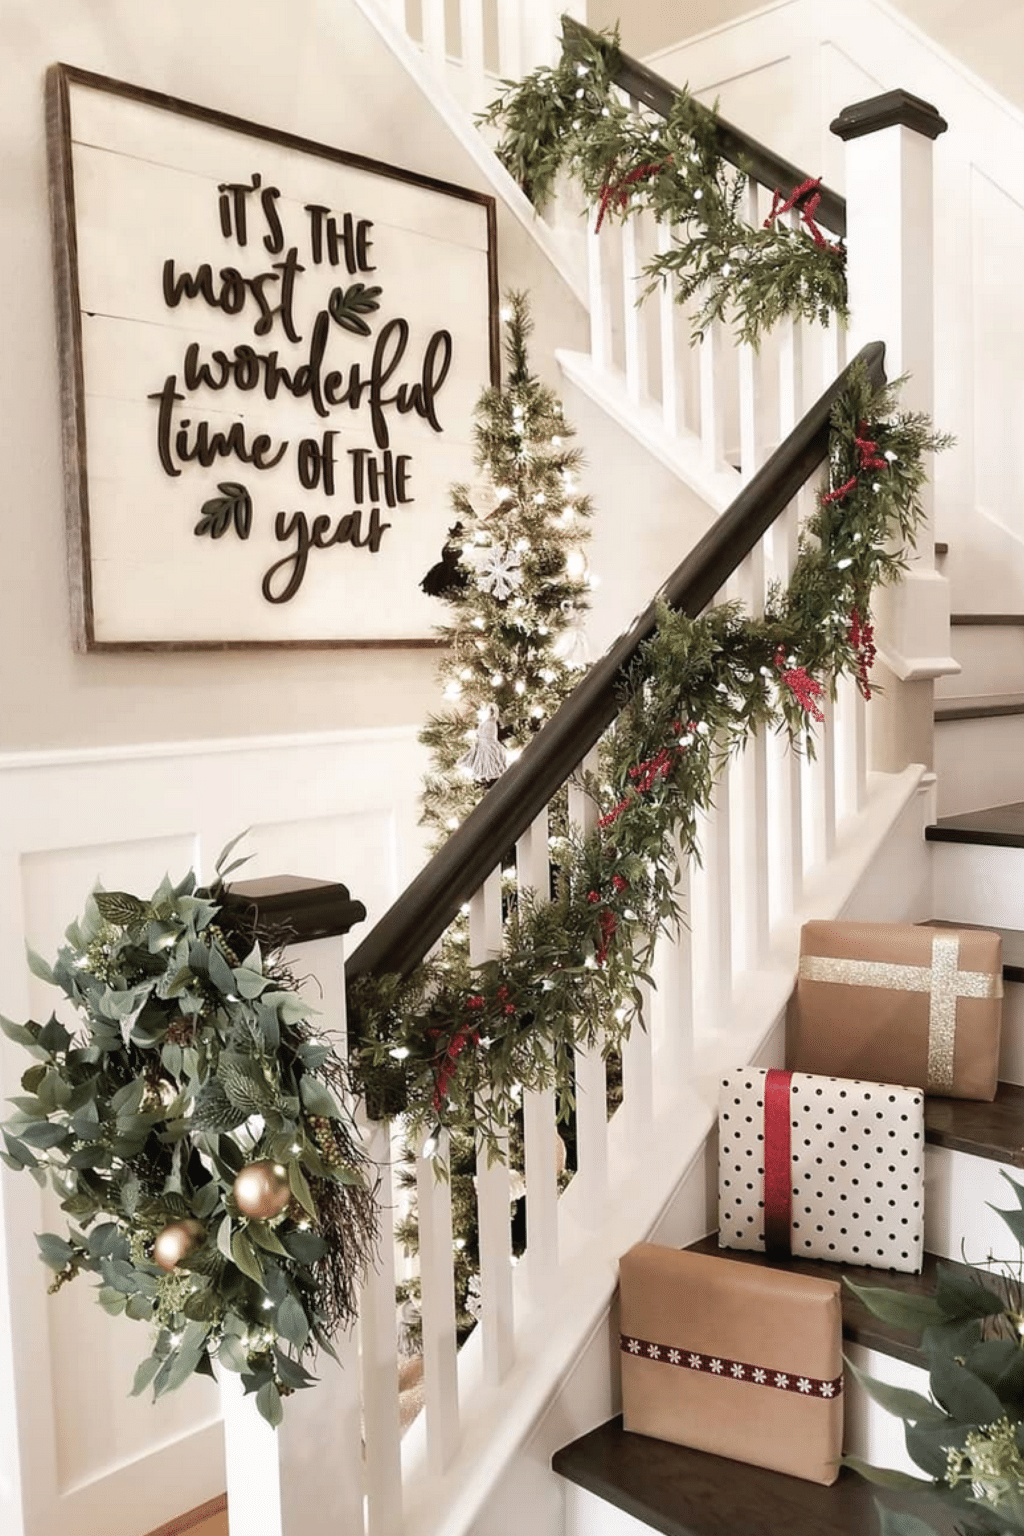 The Best Farmhouse Christmas Decor Inspiration #christmasdecorideas